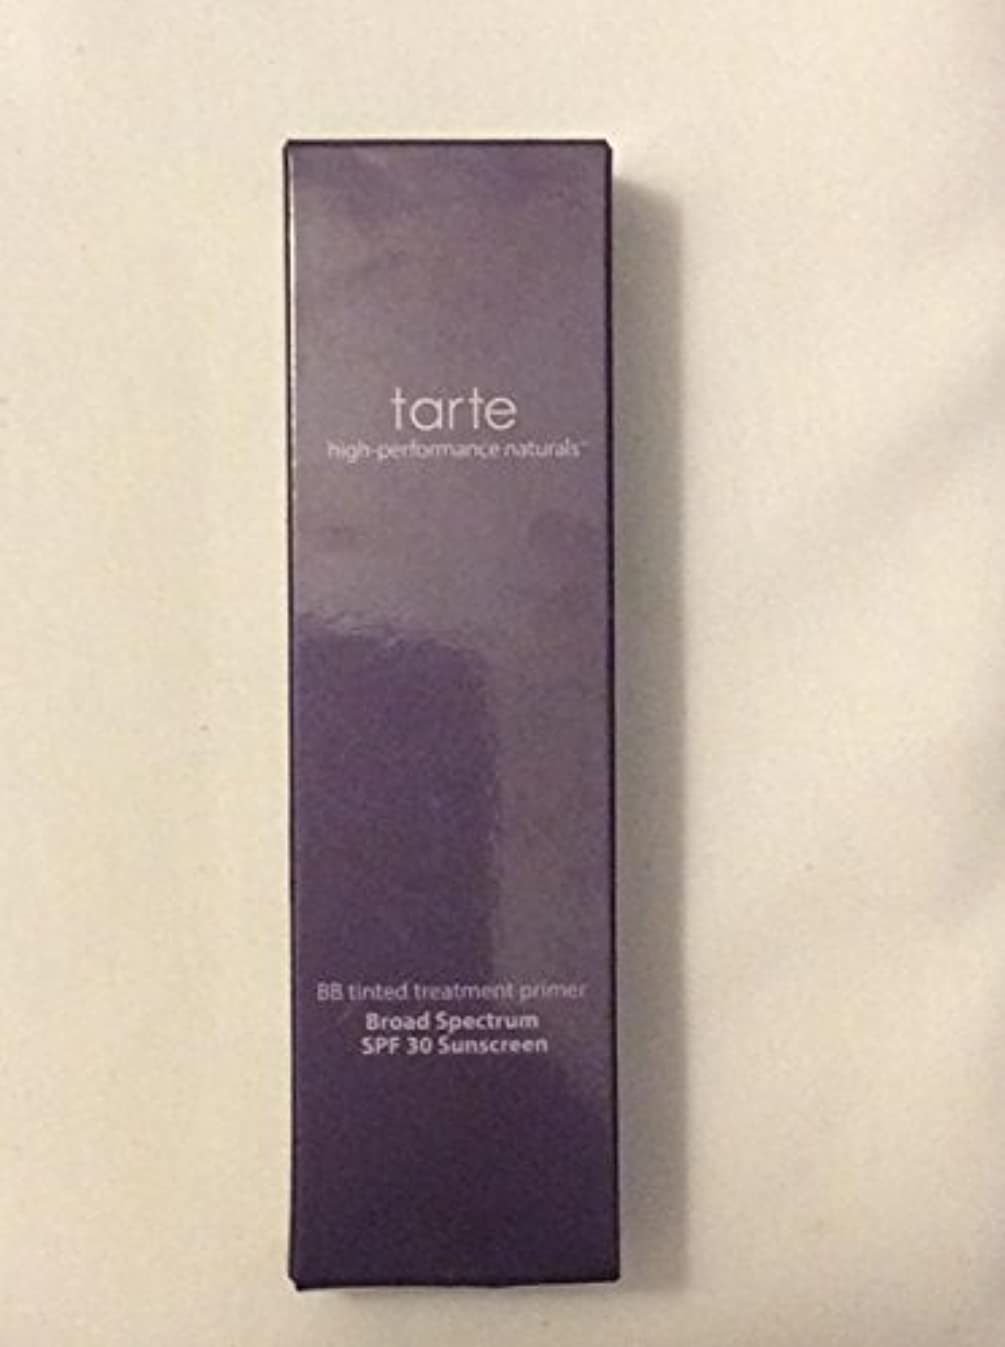 tarte BB tinted treatment 12-hour primer SPF 30 Medium